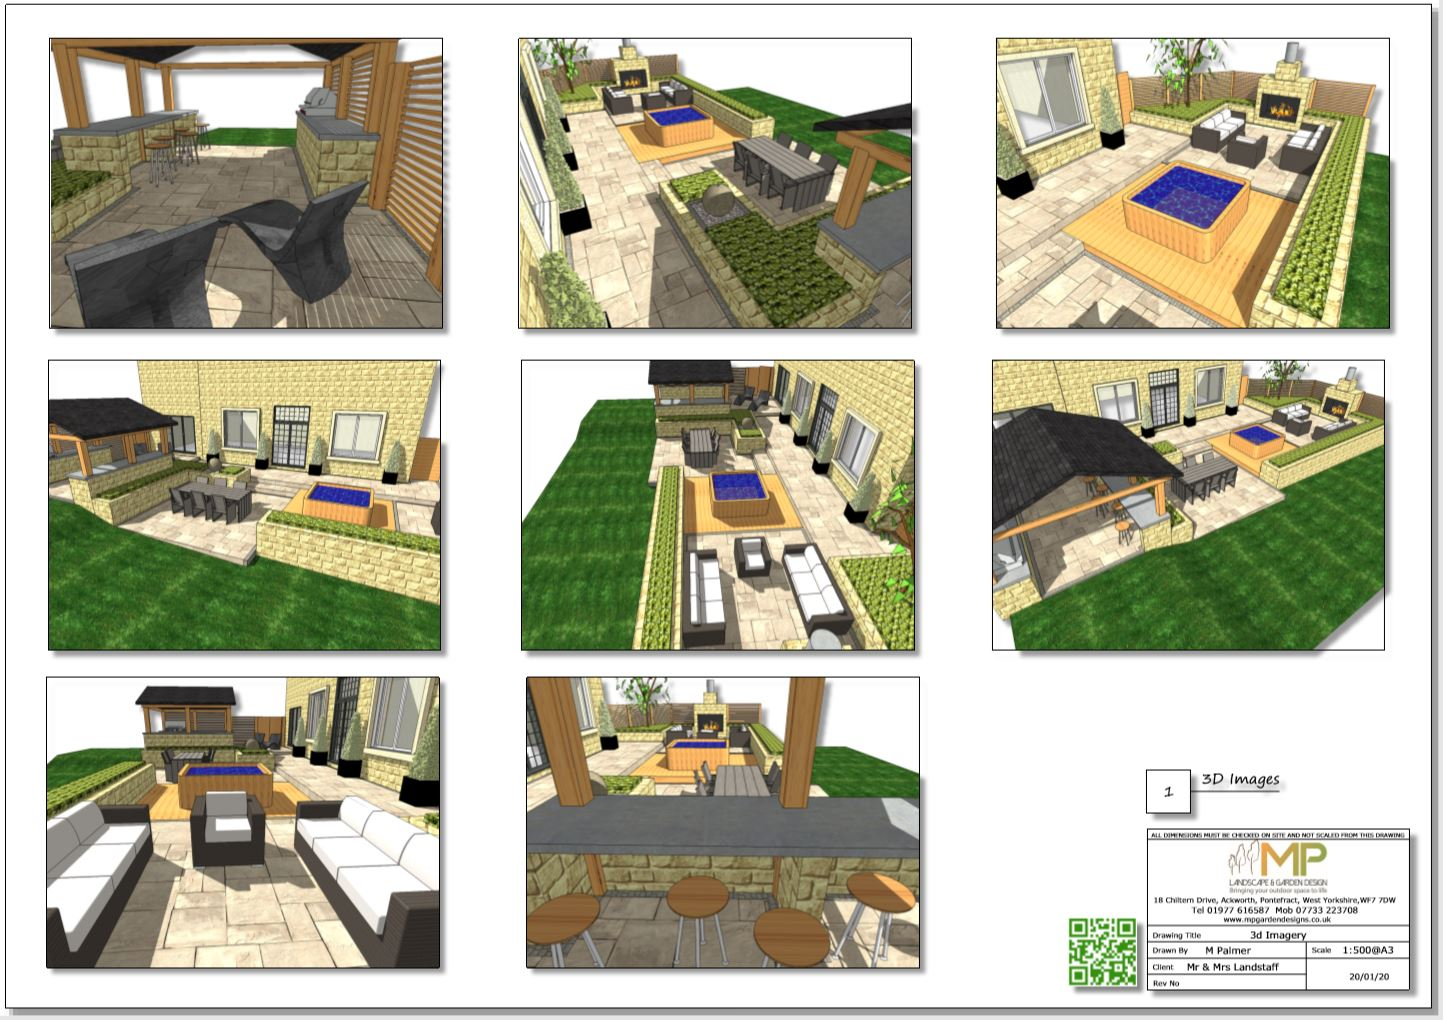 3. Concept plan 3D imags for a rear patio area in Wakefield